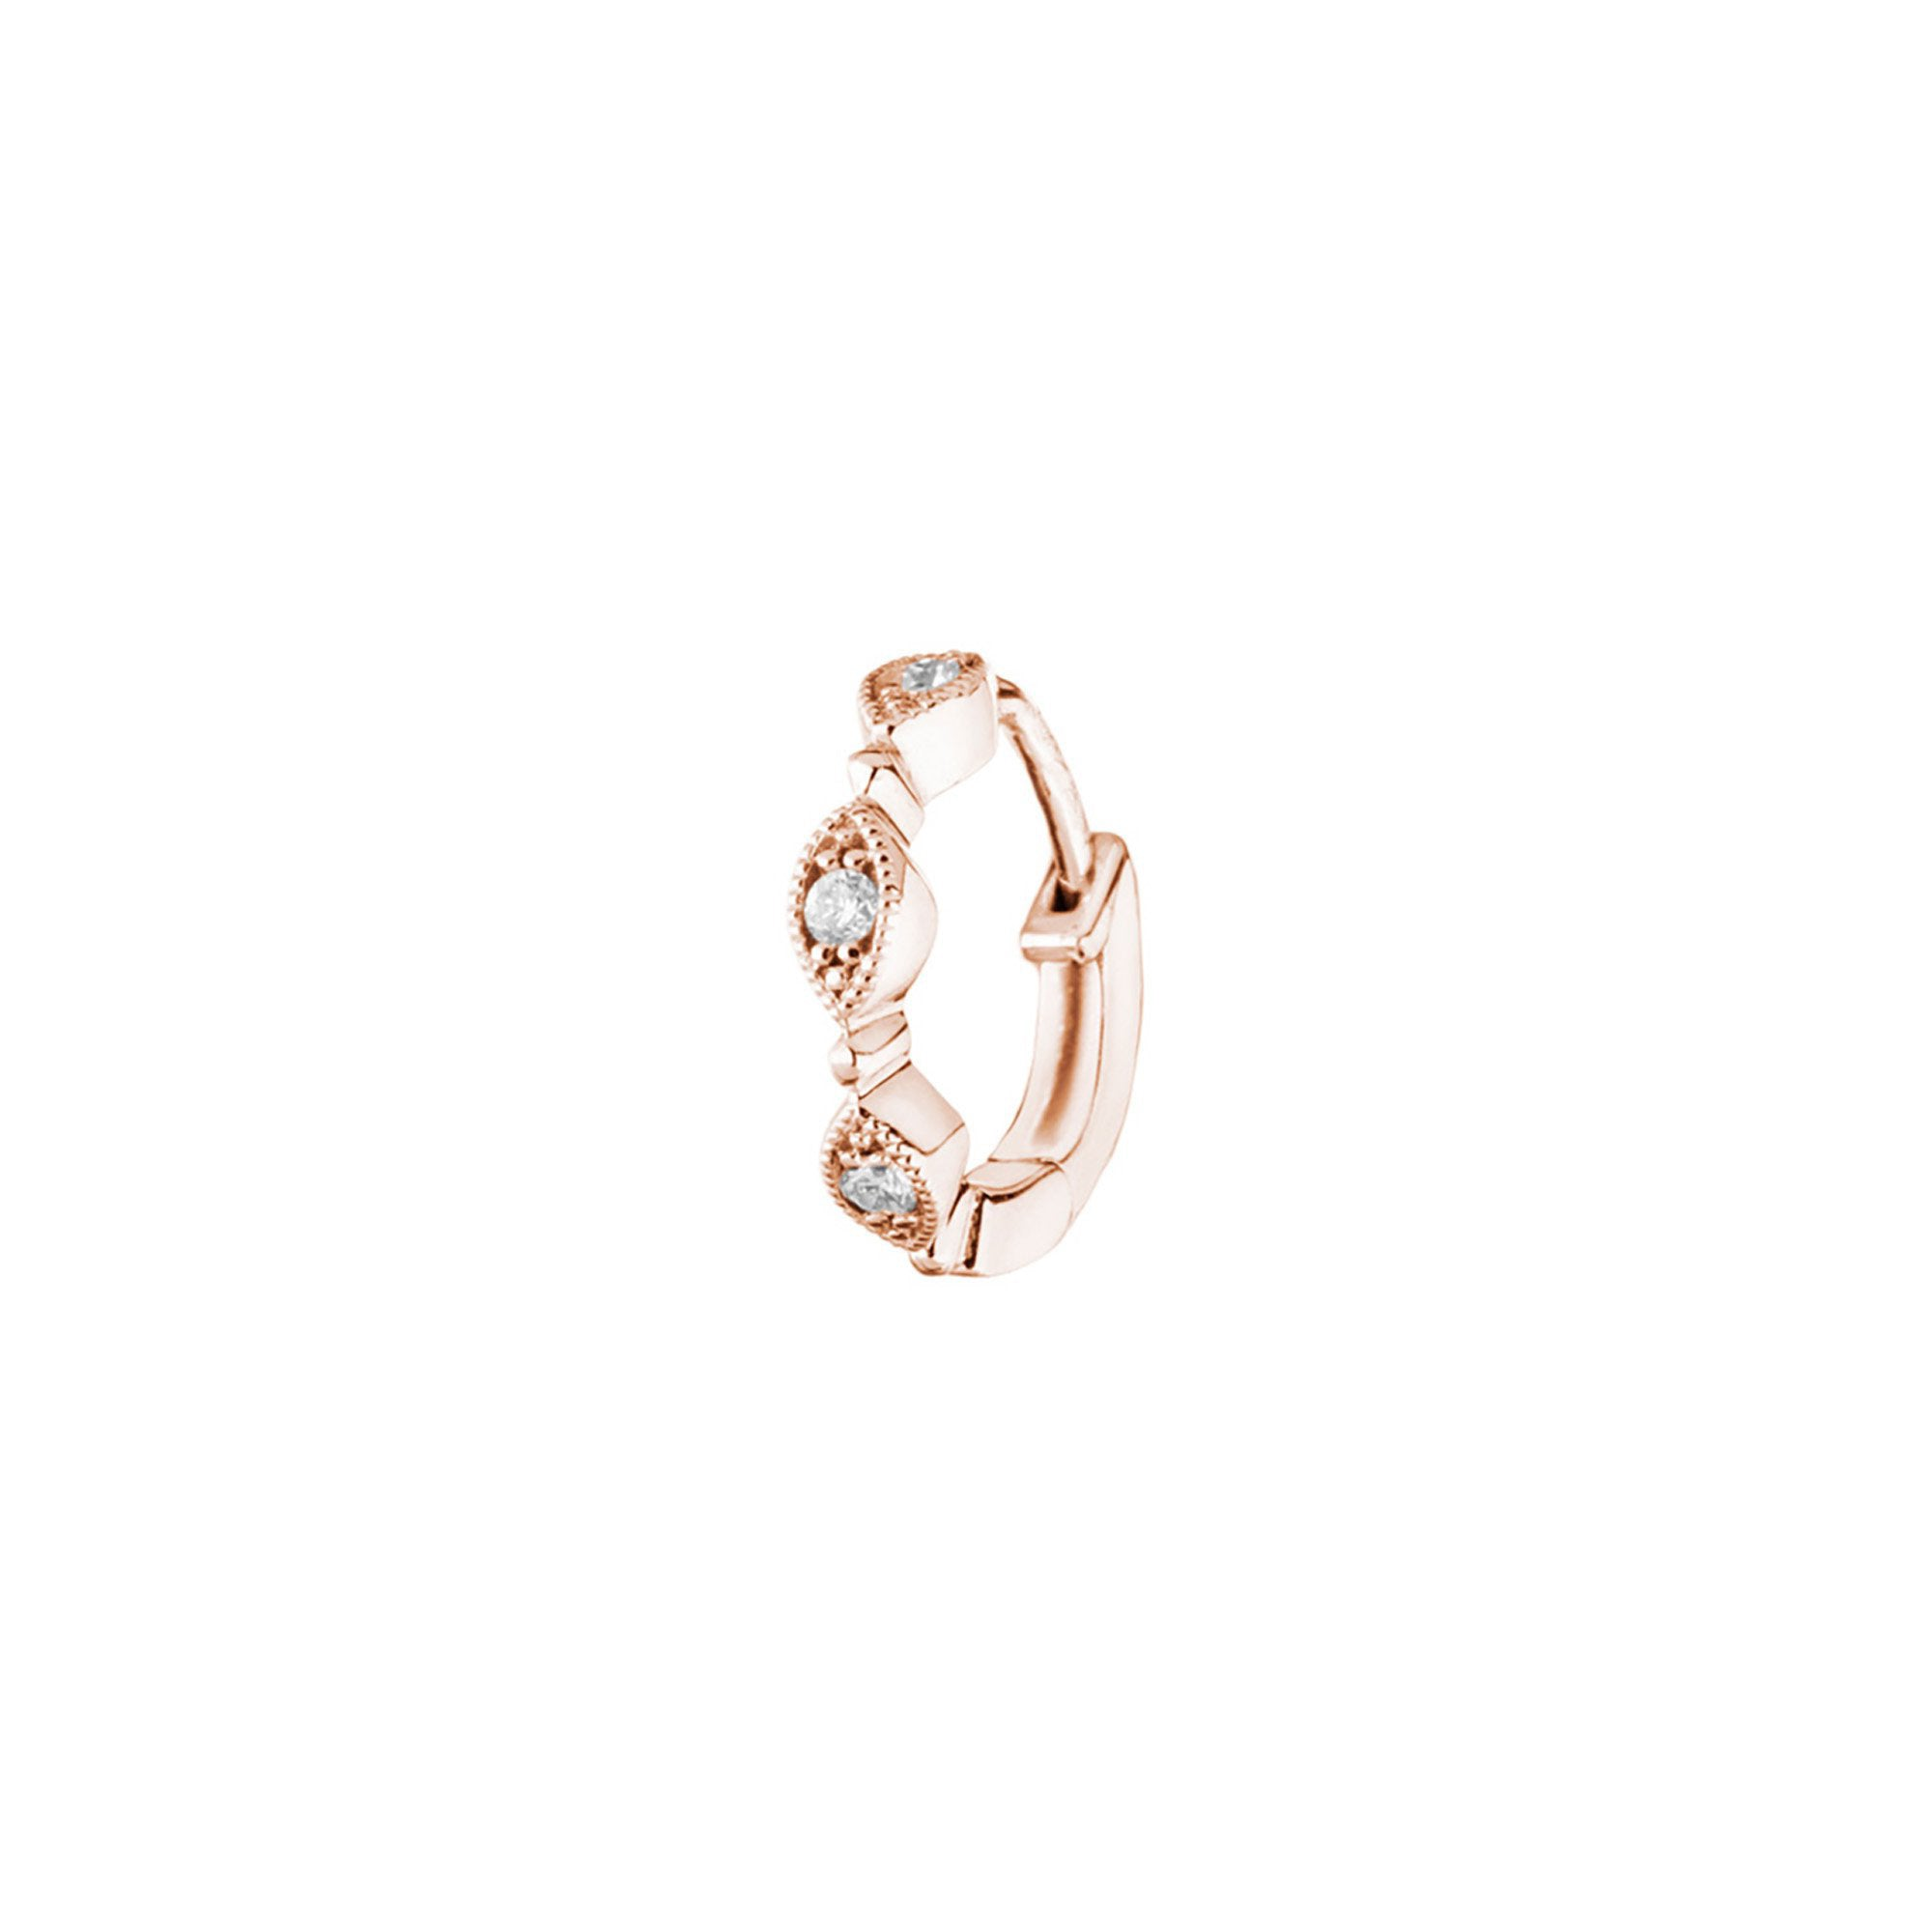 Stone Paris Yasmine Tiny Hoop - Rose Gold - Earrings - Broken English Jewelry